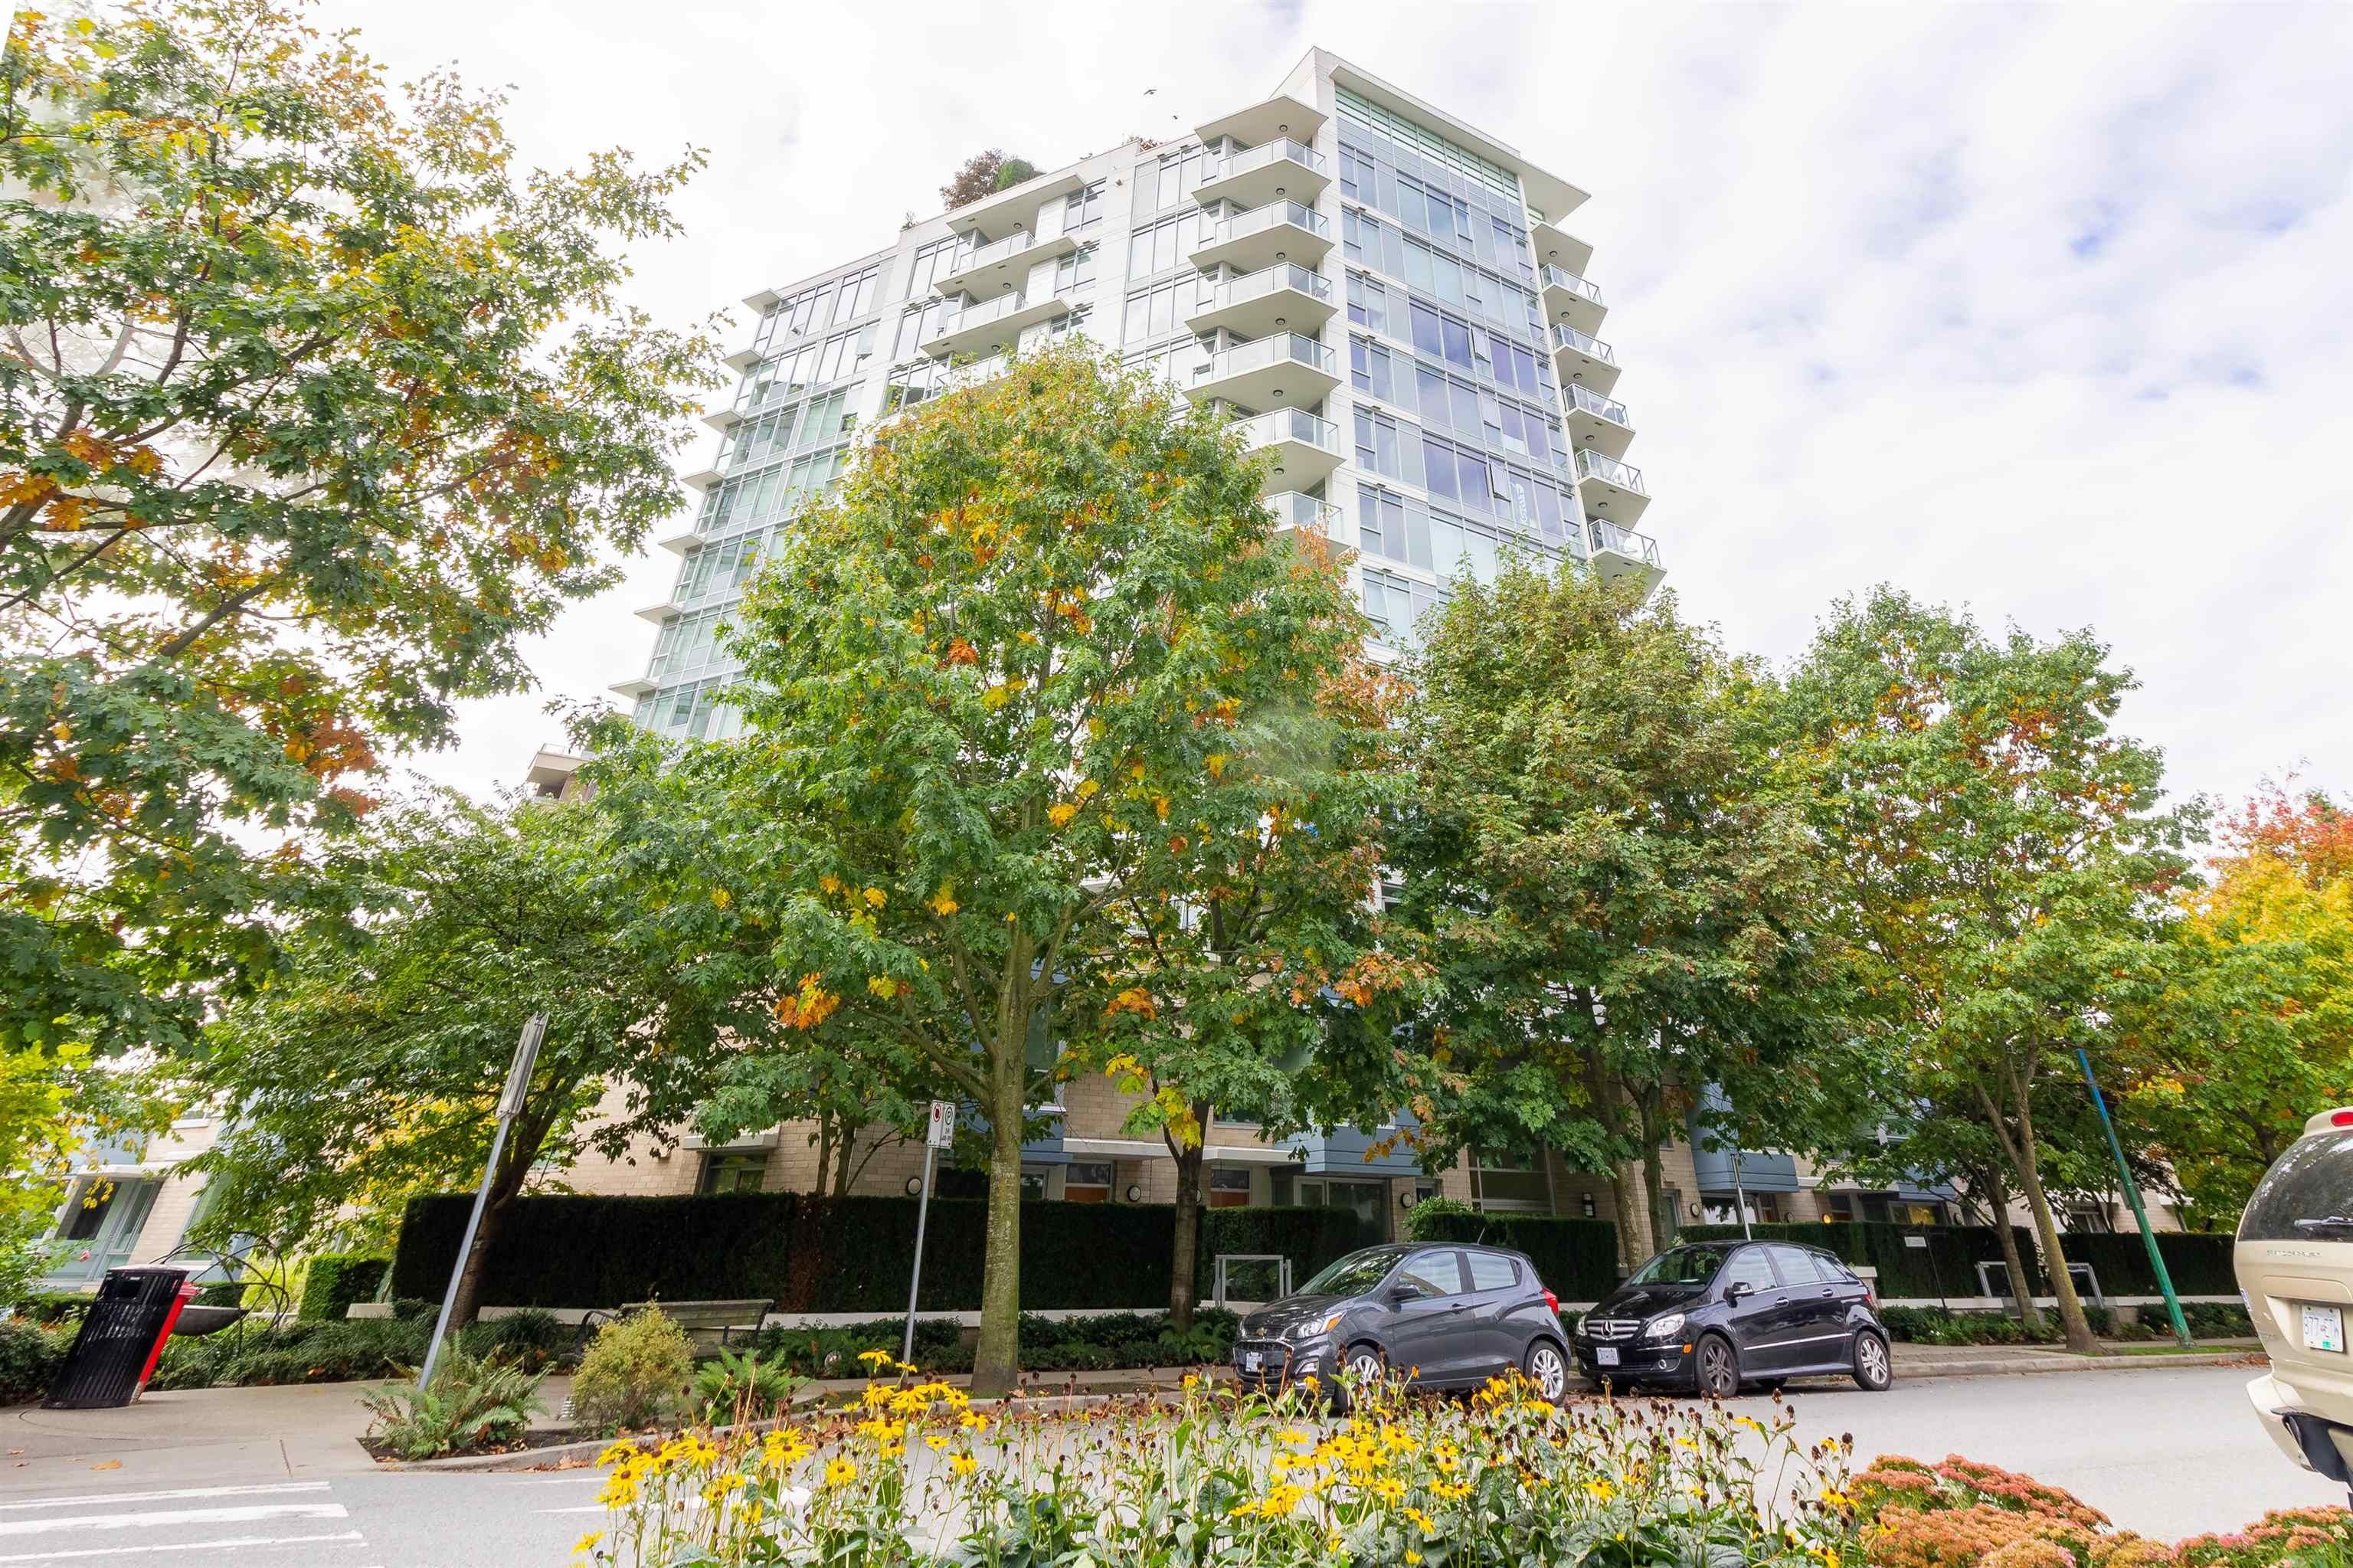 """Main Photo: 208 175 W 2ND Street in North Vancouver: Lower Lonsdale Condo for sale in """"VENTANA"""" : MLS®# R2625562"""